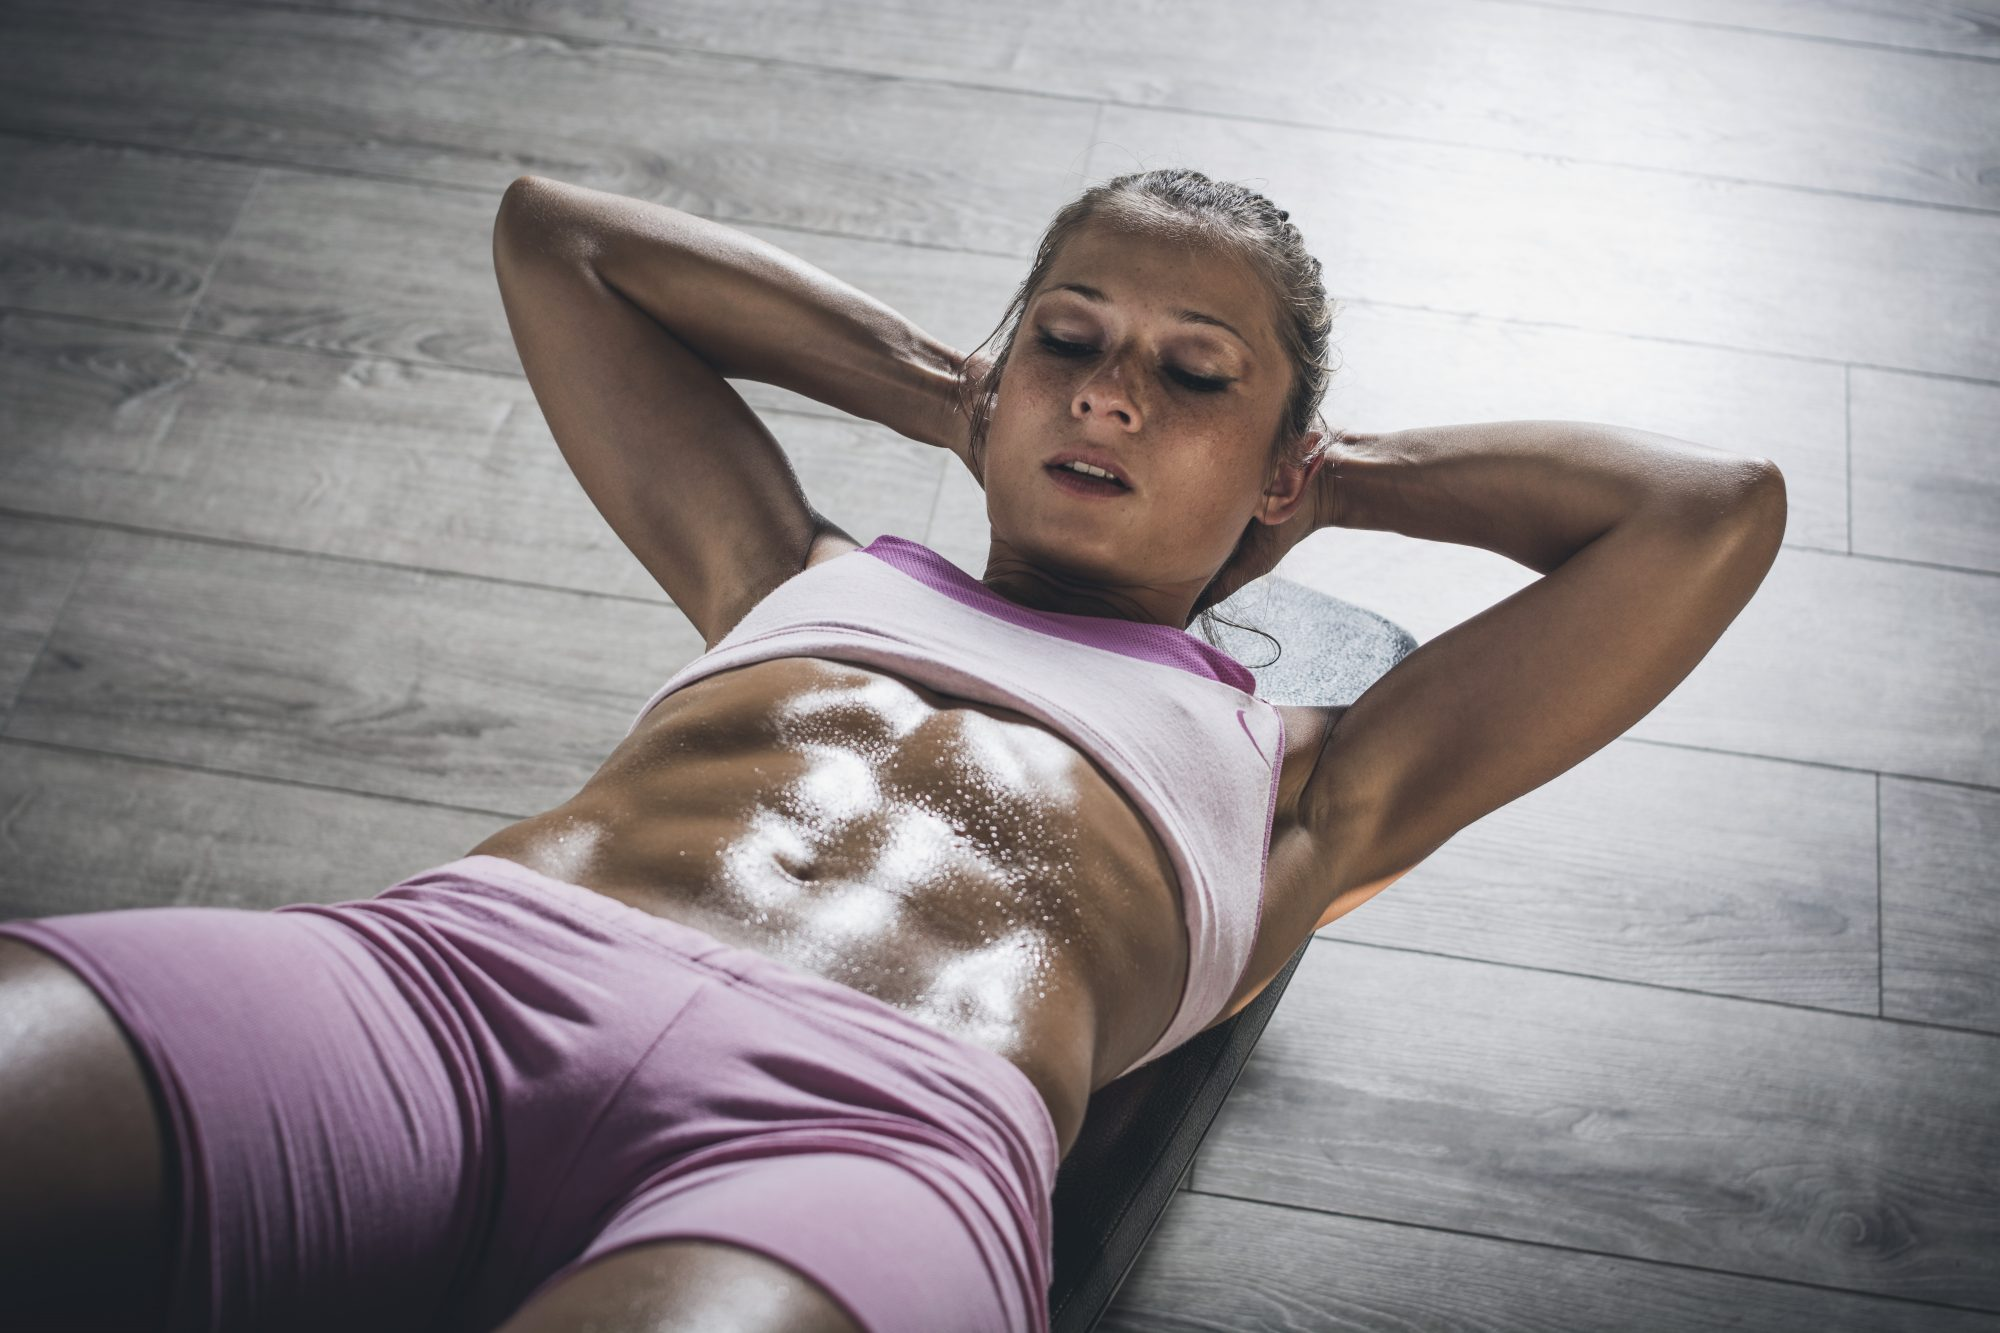 abs-situps-sweat-workout-exercise-muscle